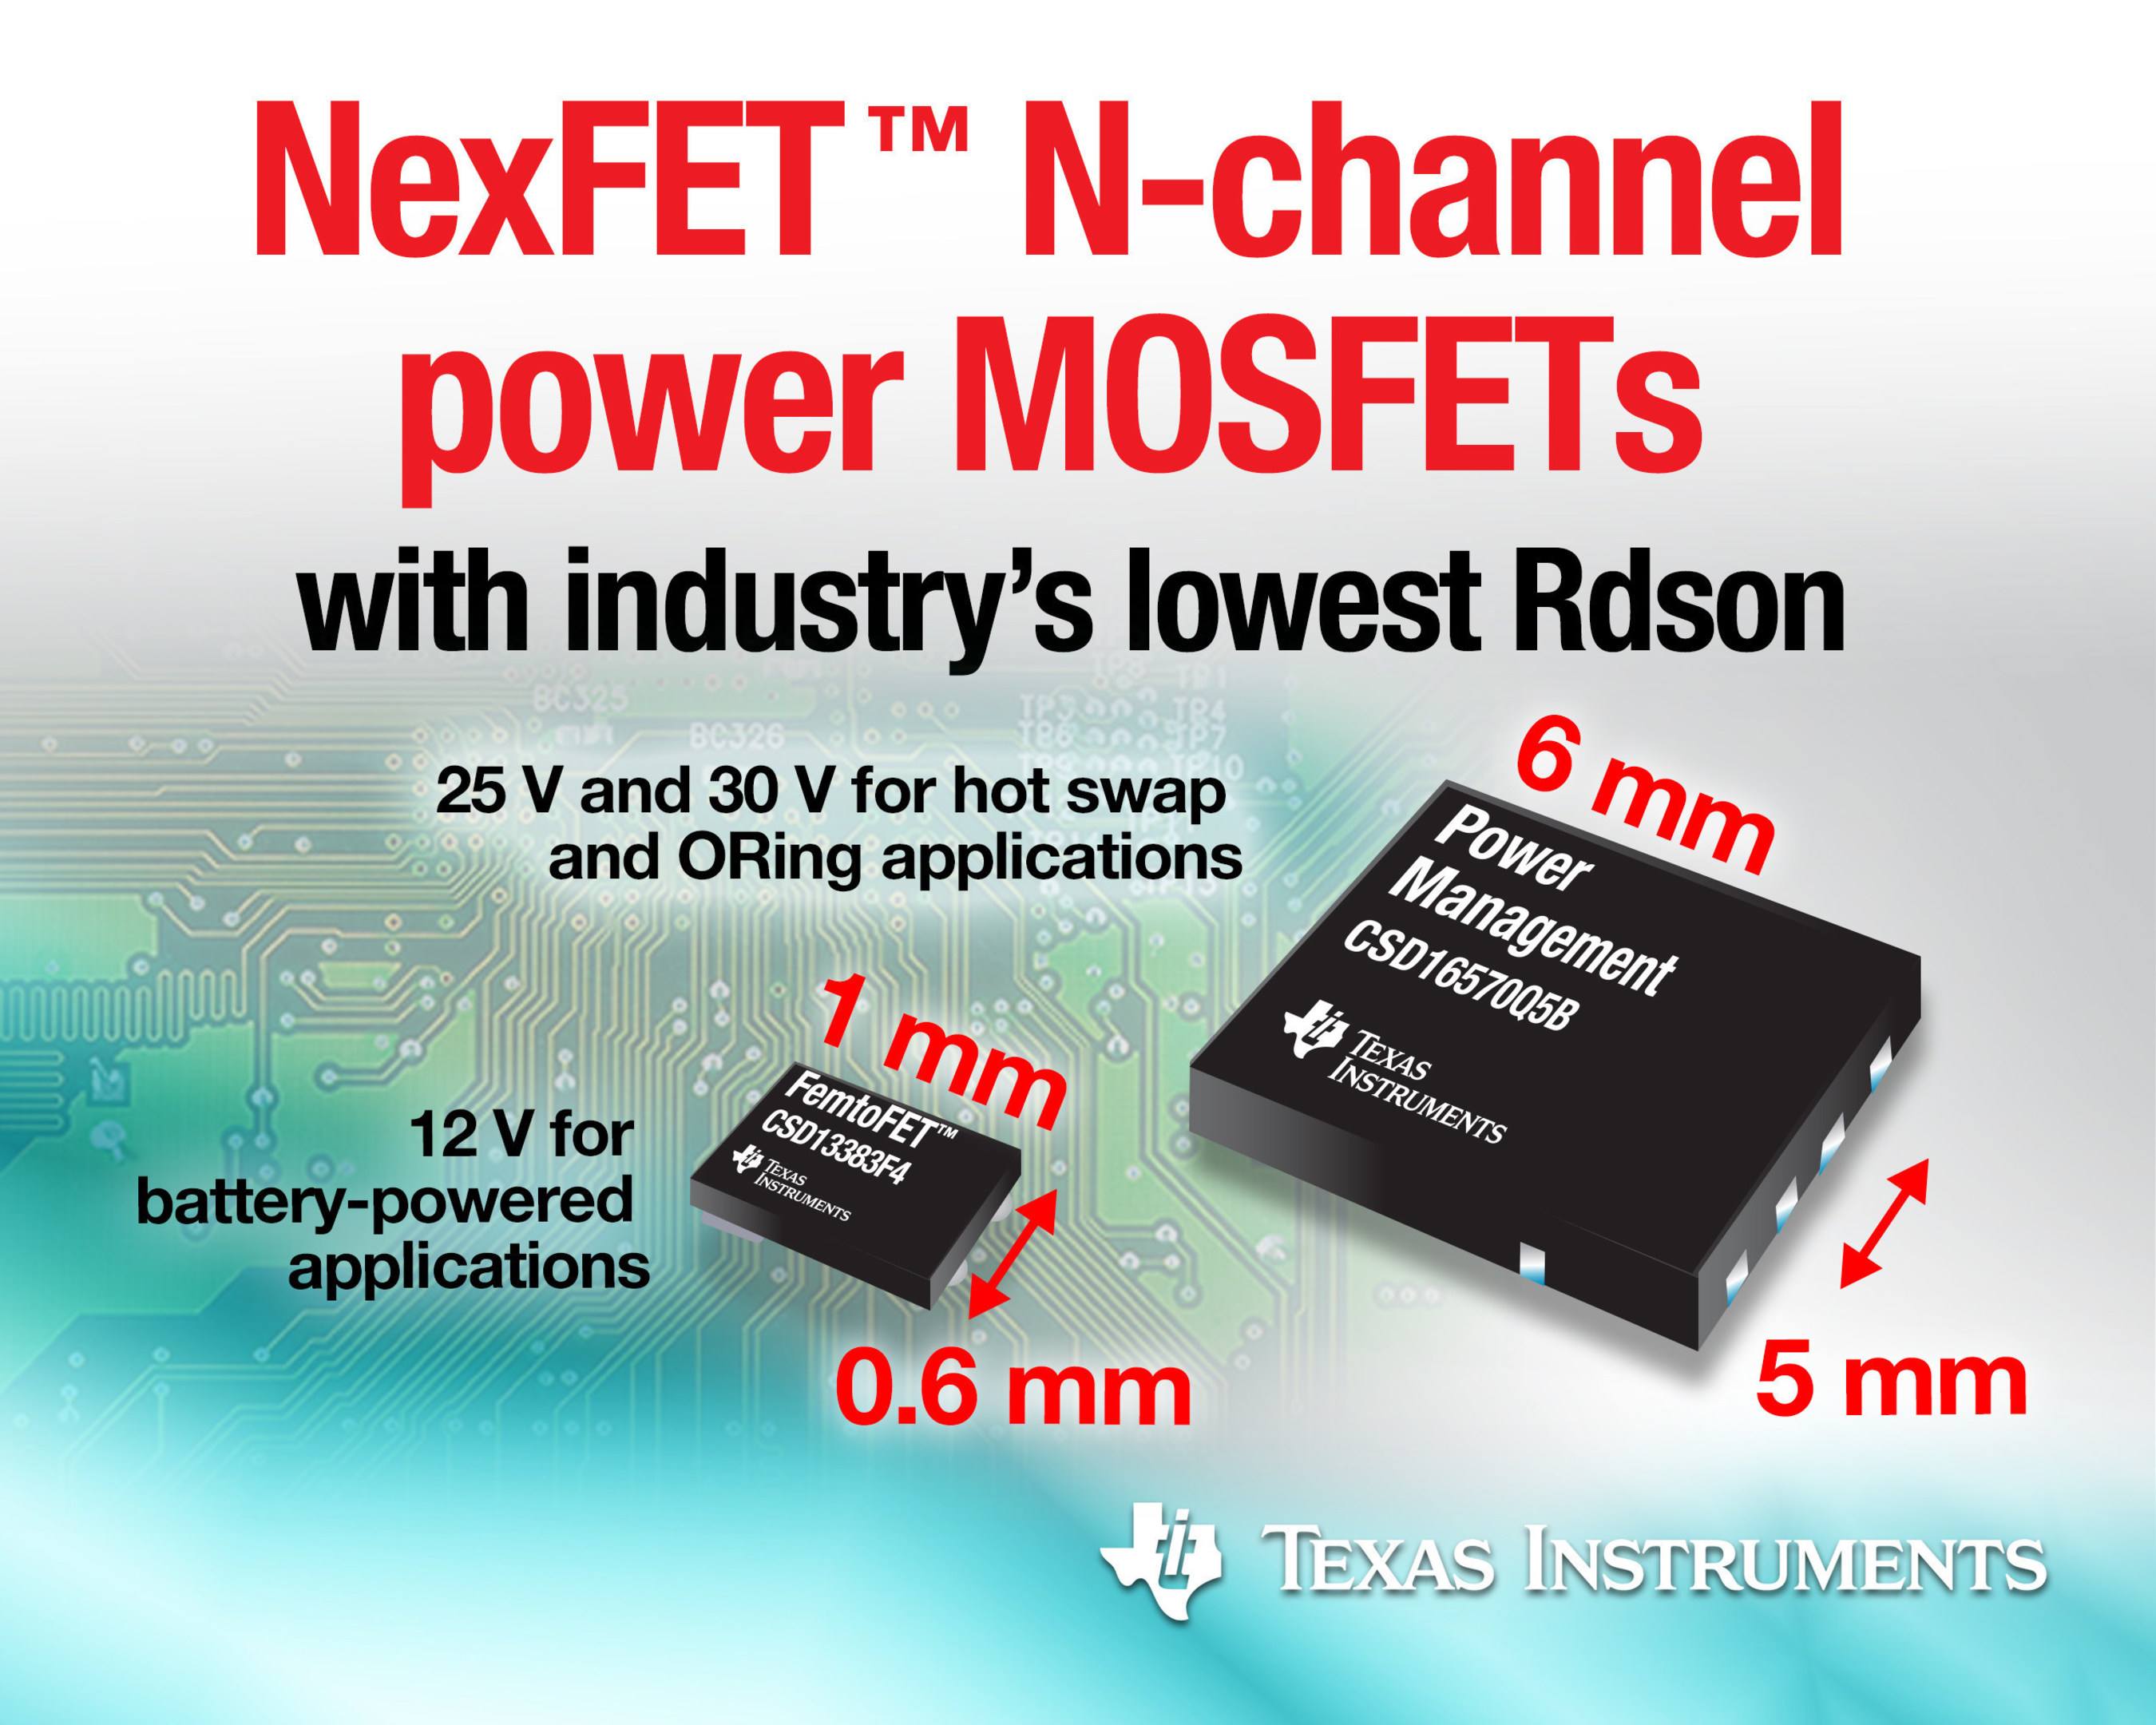 TI's NexFET™ N-channel power MOSFETs achieve industry's lowest